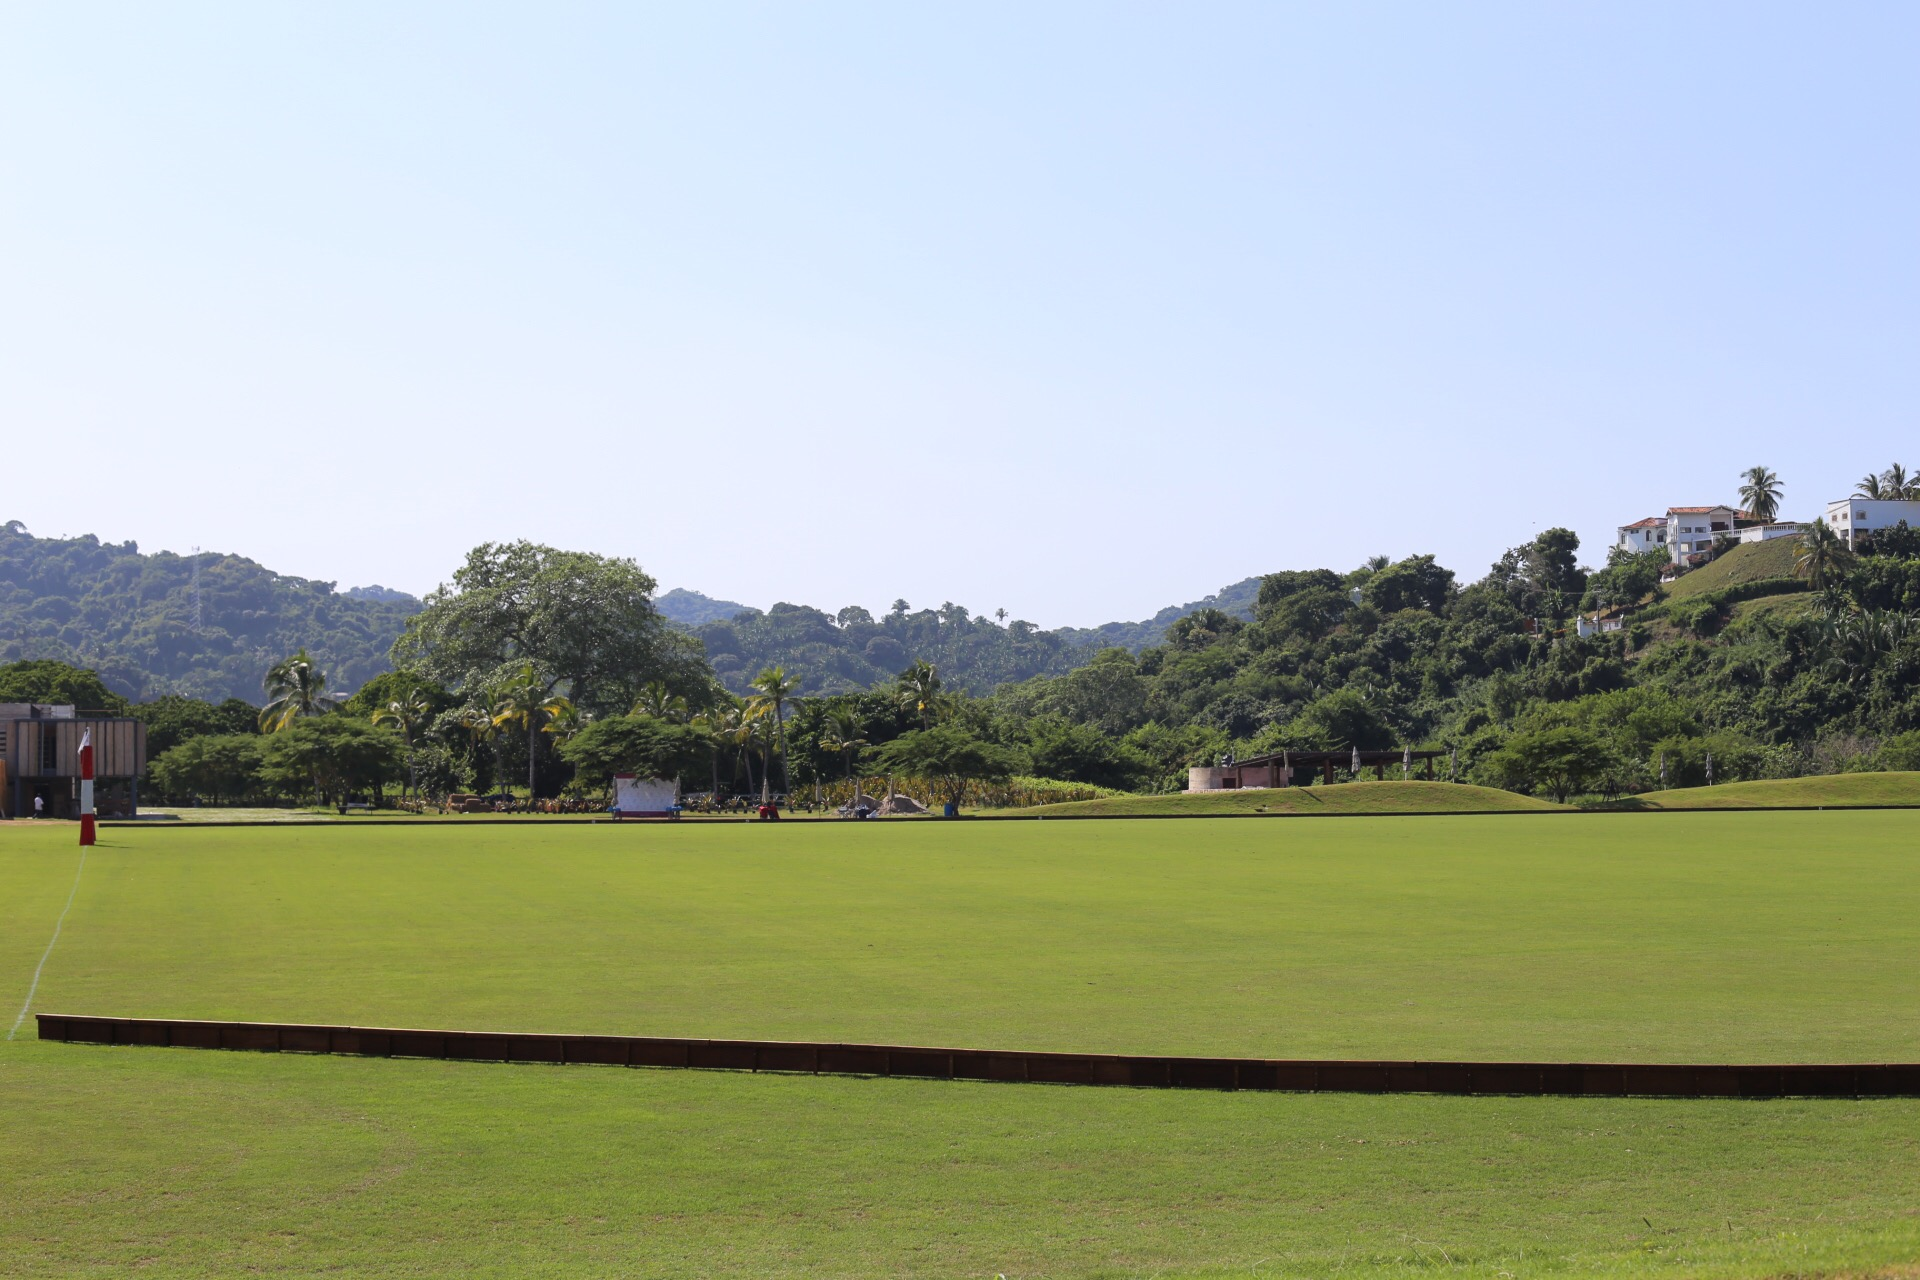 La Patron Polo Field